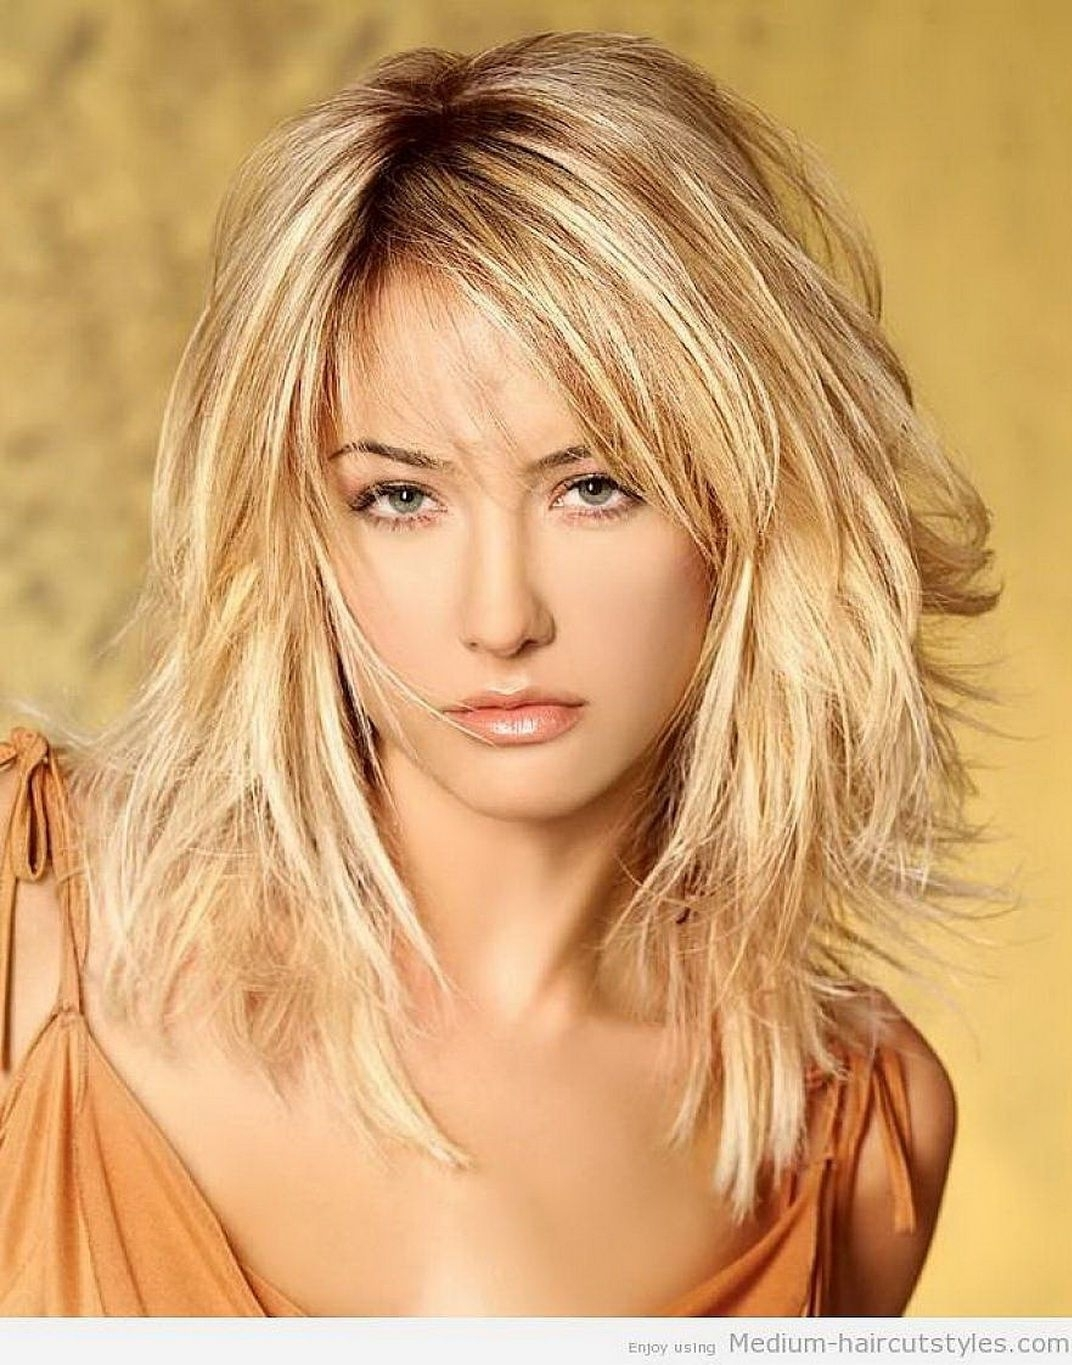 Pin On Perdiness 20+ Awesome Medium Wavy Hairstyles With Side Bangs